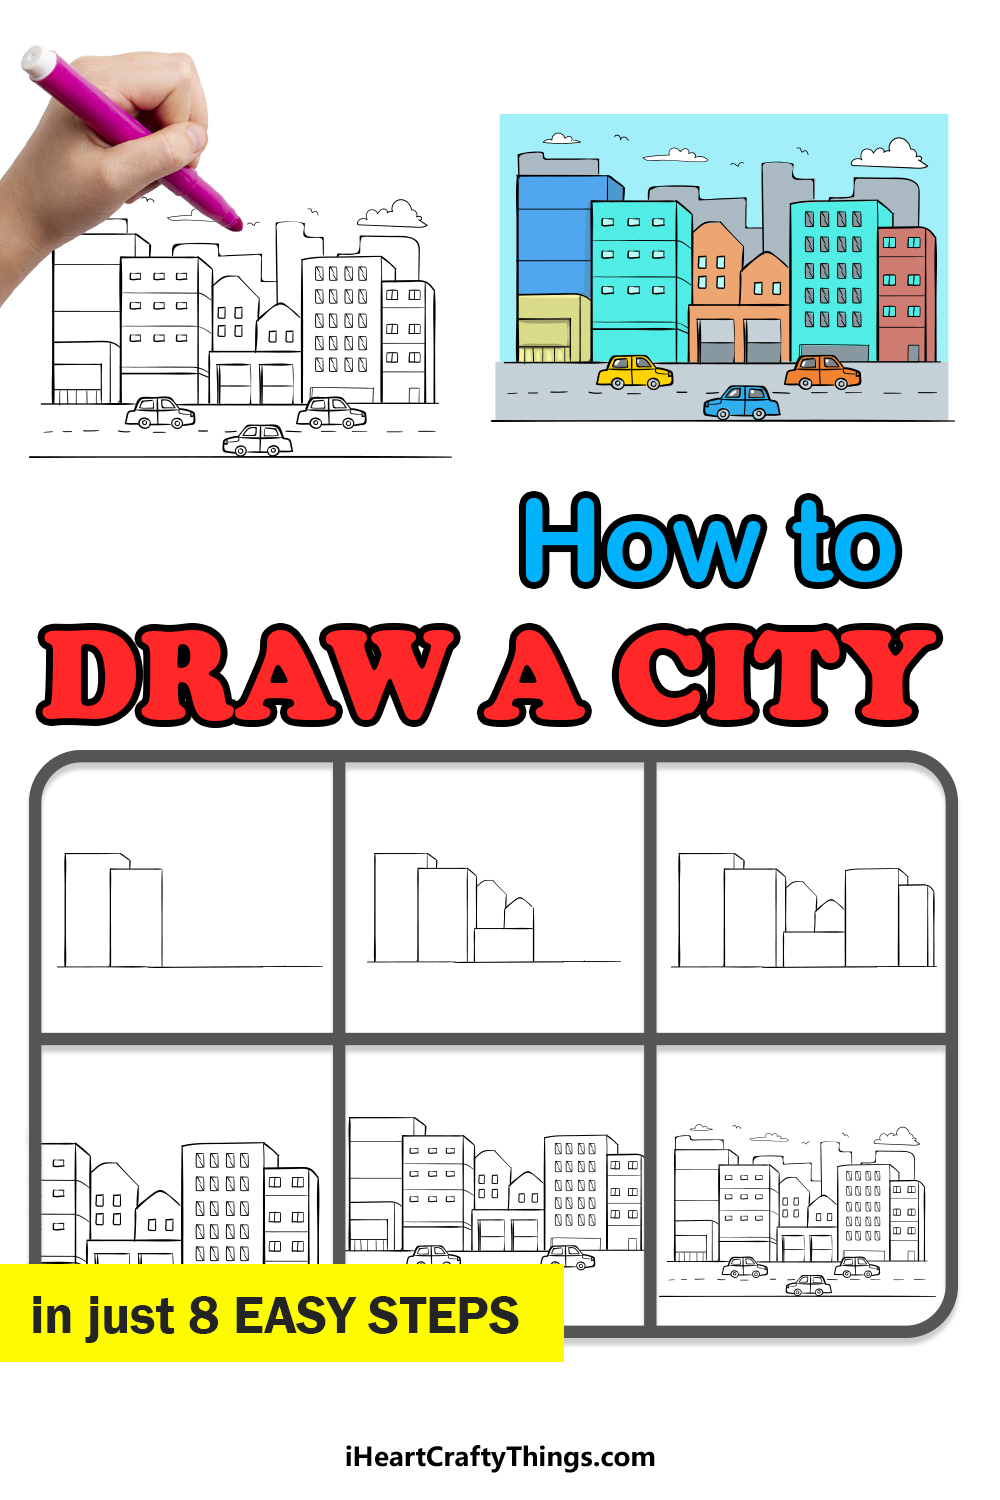 how to draw a city in 8 easy steps